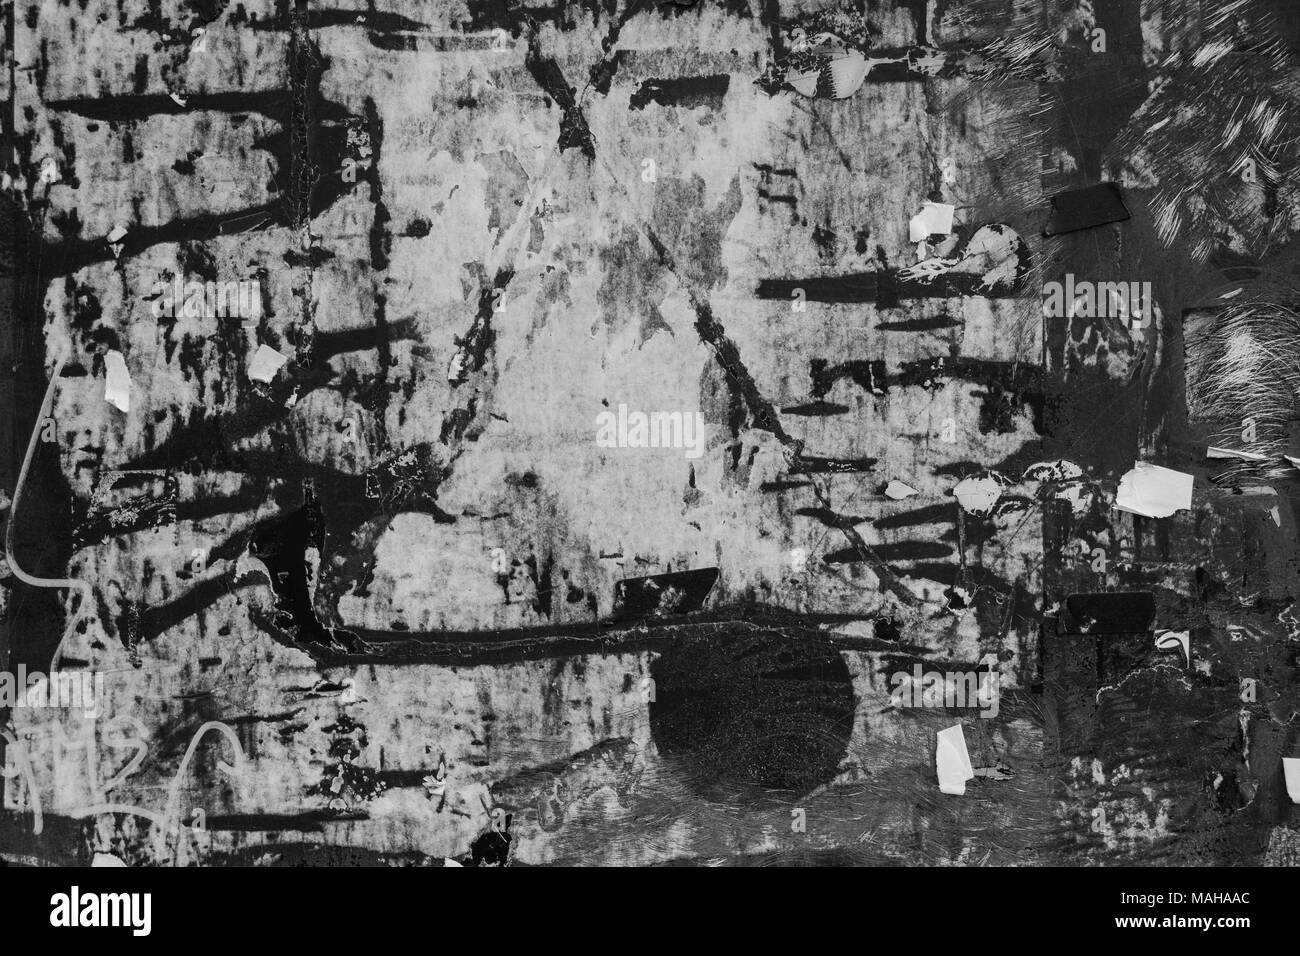 black and white textured bulletin board with paper remnants. - Stock Image